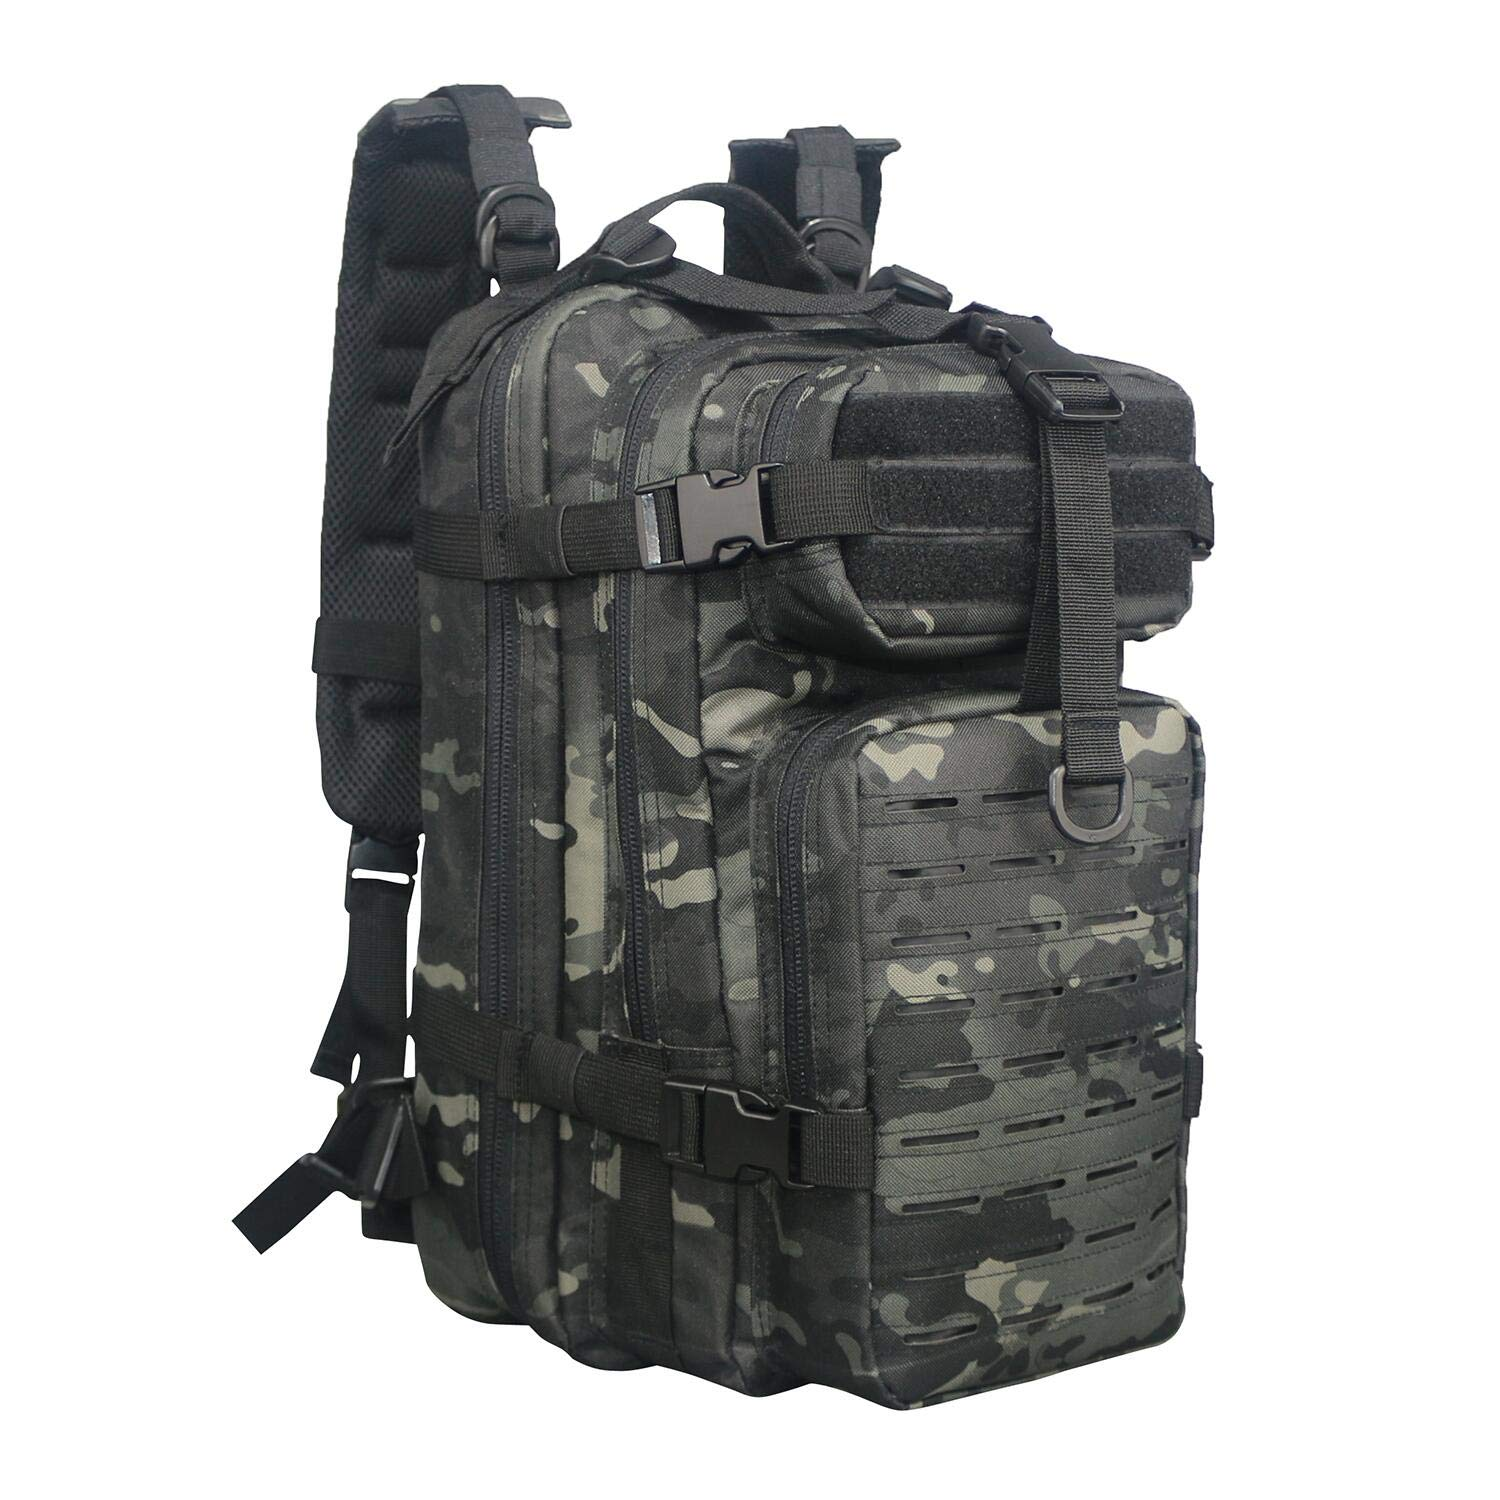 Fox Tactical Small Assault Backpack Military Backpack Tactical Bag for Outdoor, Hiking, Camping Travel